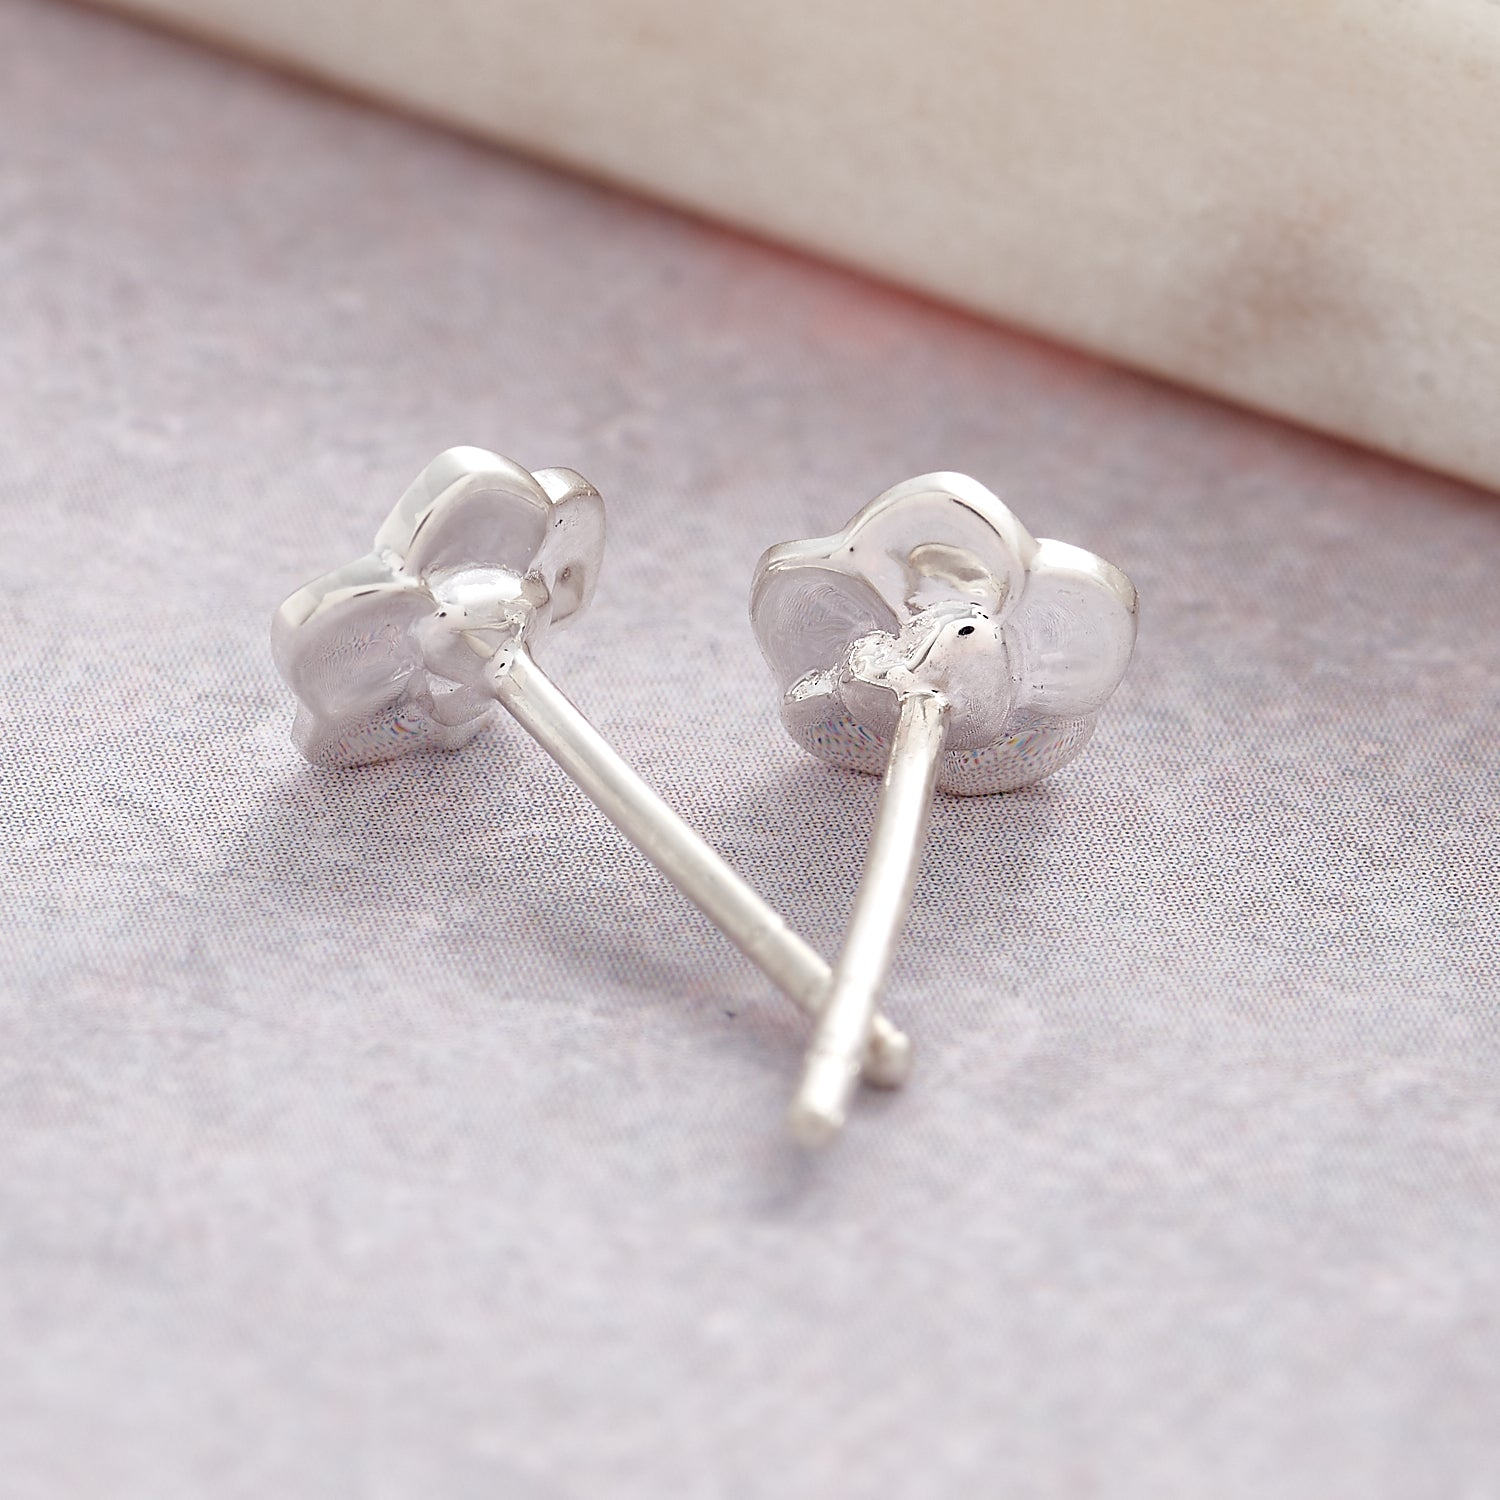 heart on back of tiny silver forget me not flower stud earrings for women and girls scarlett jewellery brighton